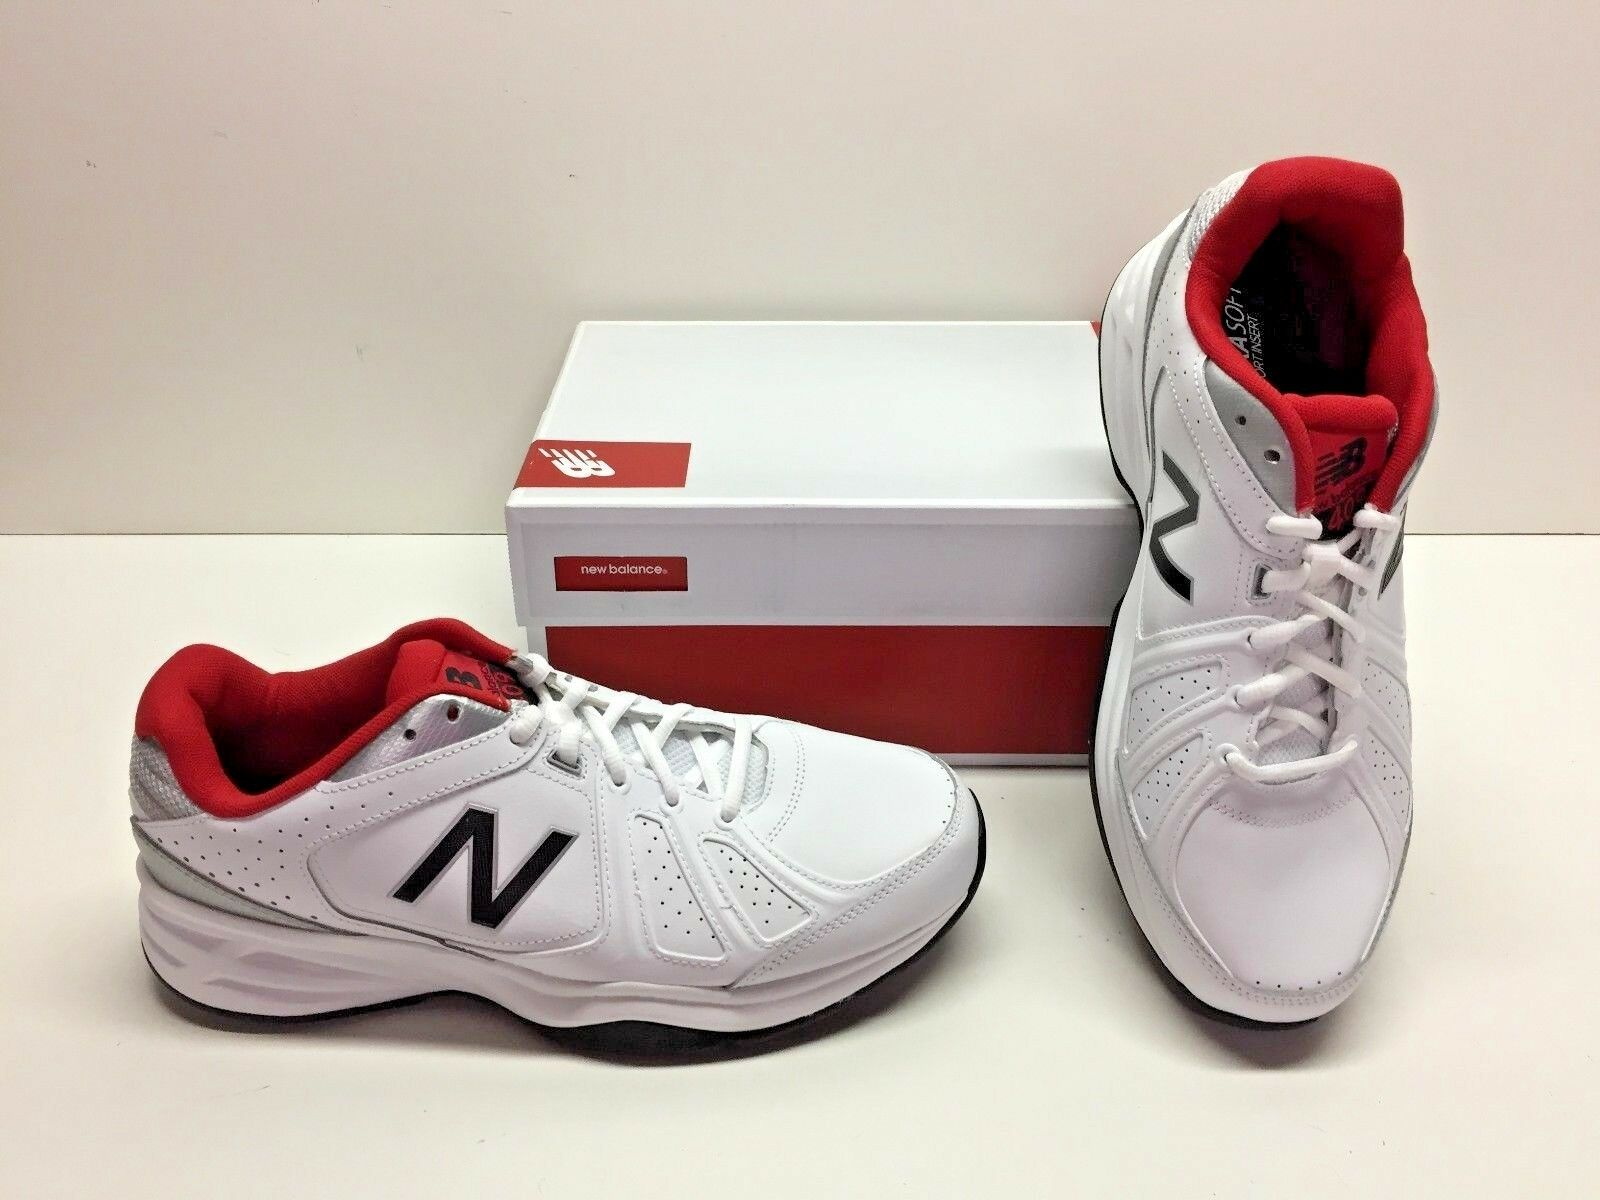 New Balance 409v3 White Running Cross Training Sneakers shoes Mens 10 4E X-Wide